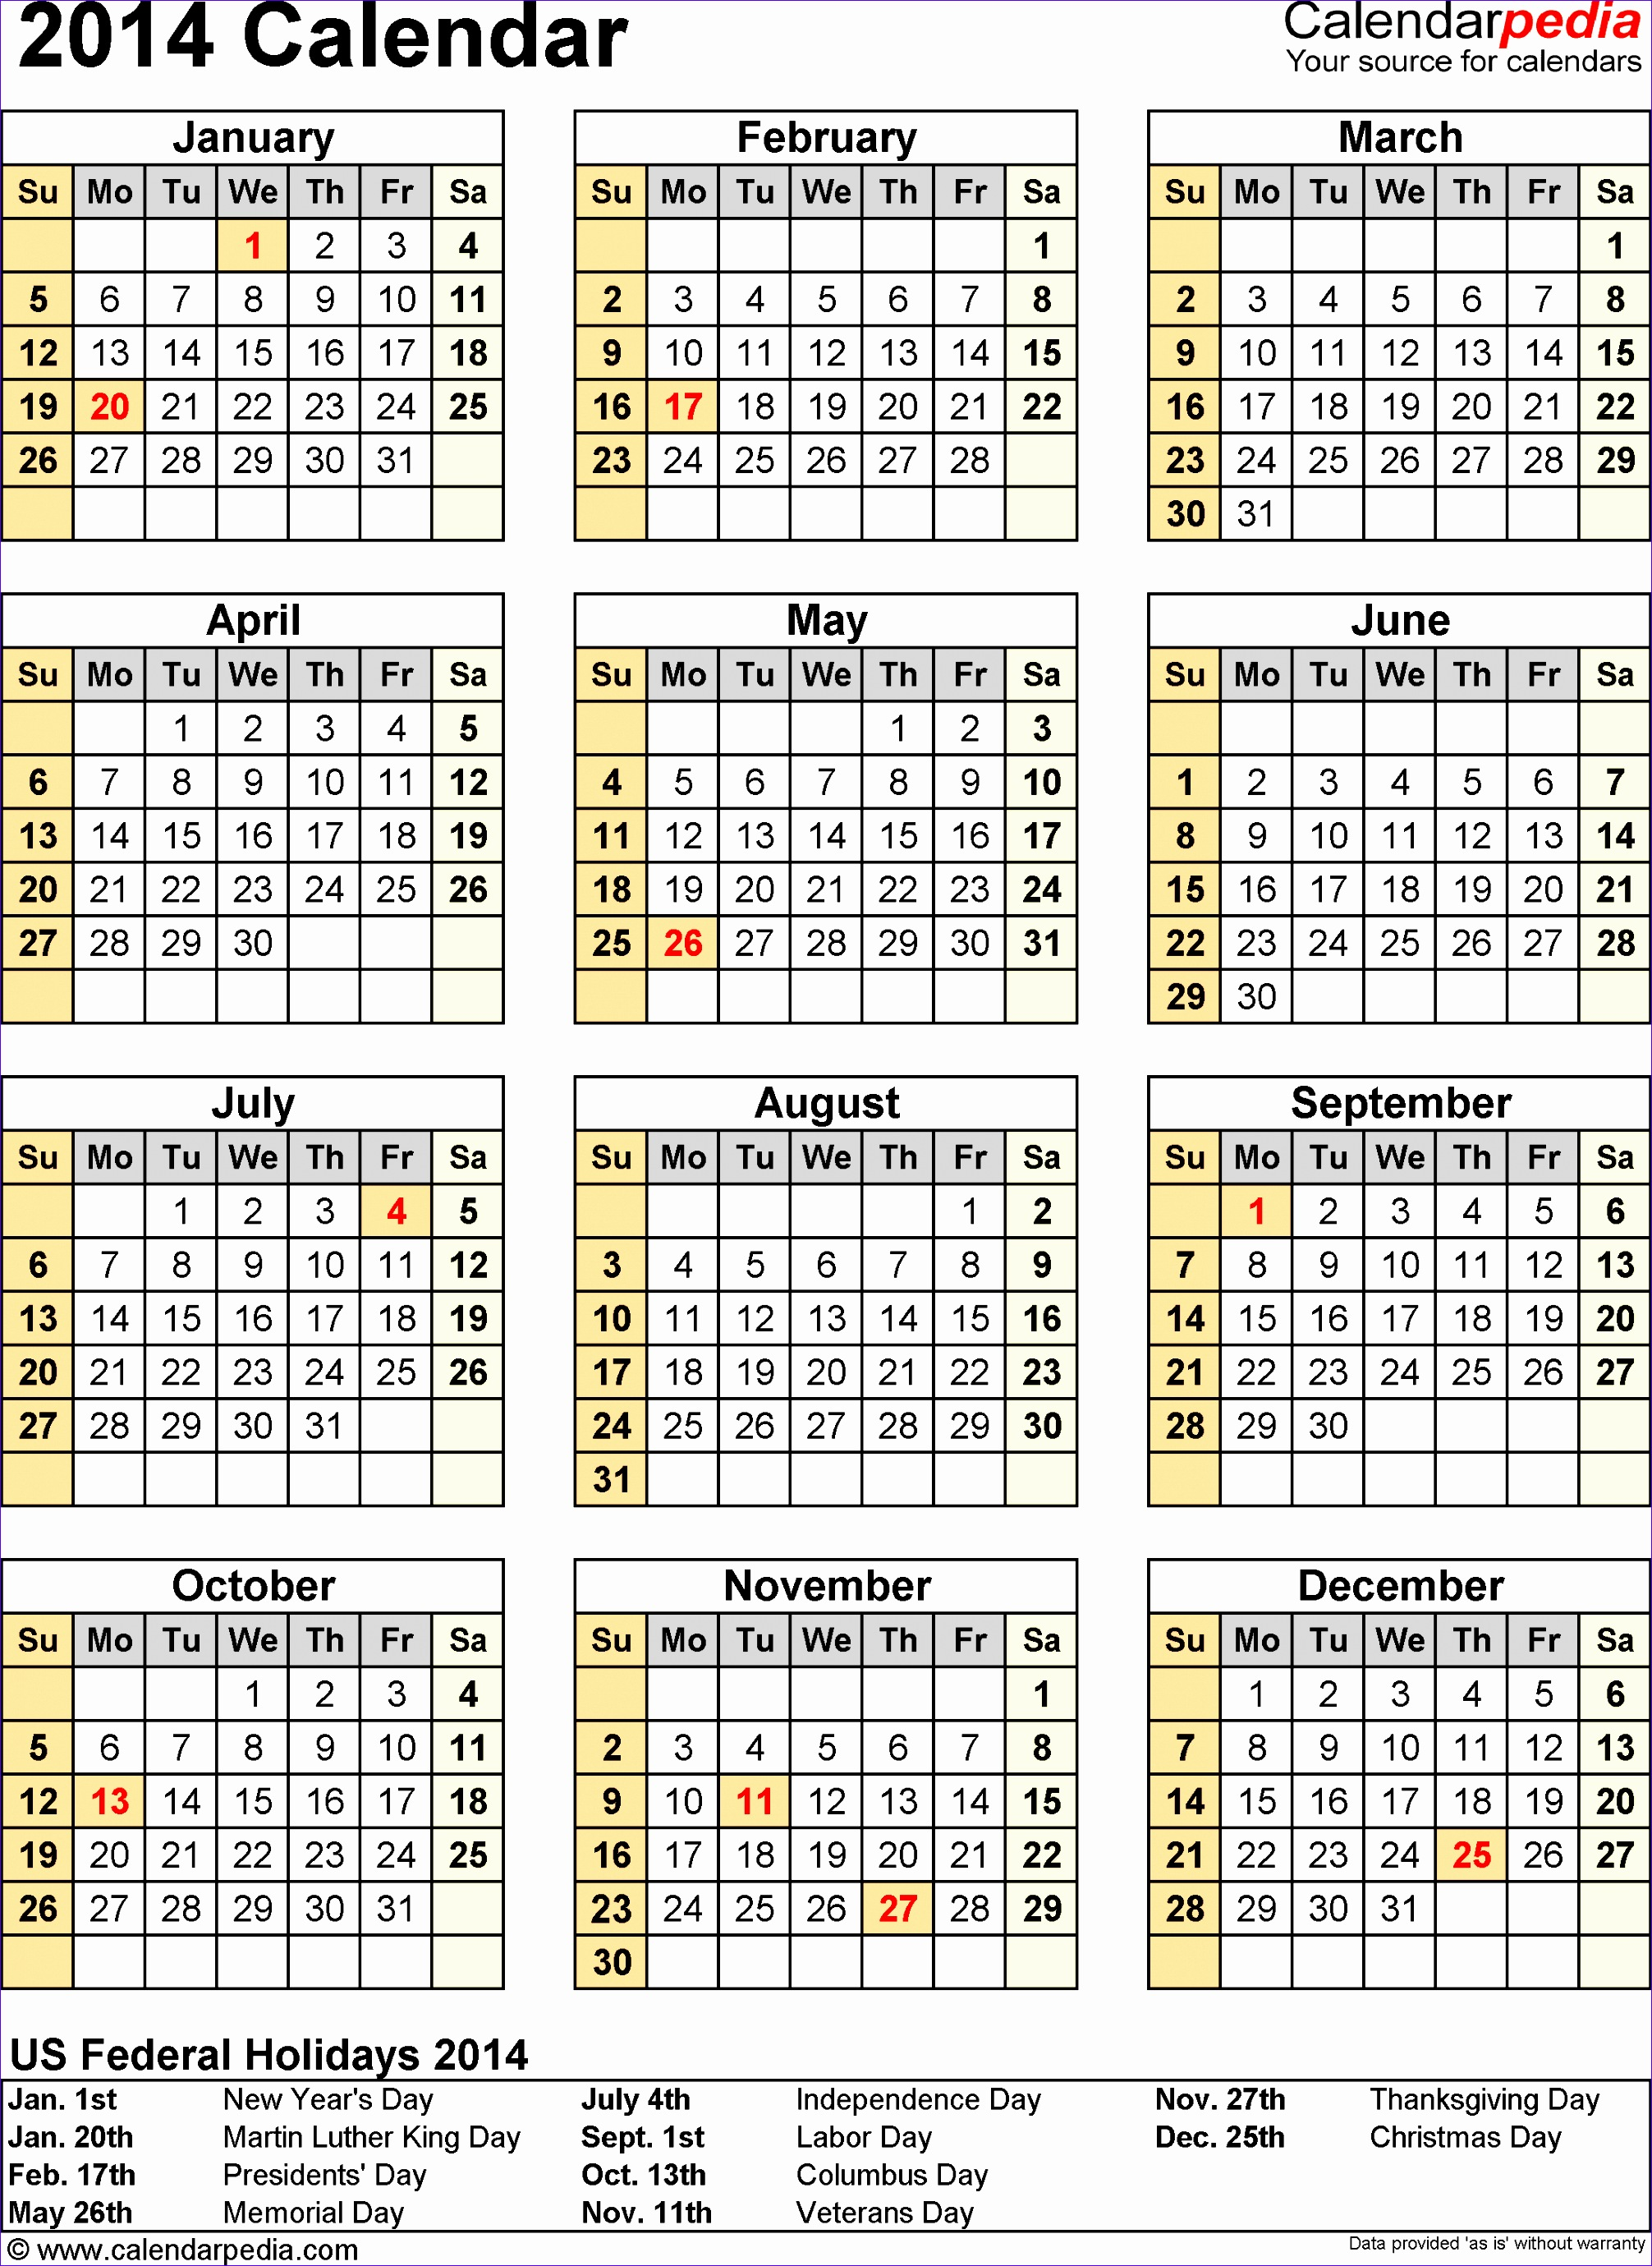 Calendar Templates For Excel : Ms excel calendar template exceltemplates